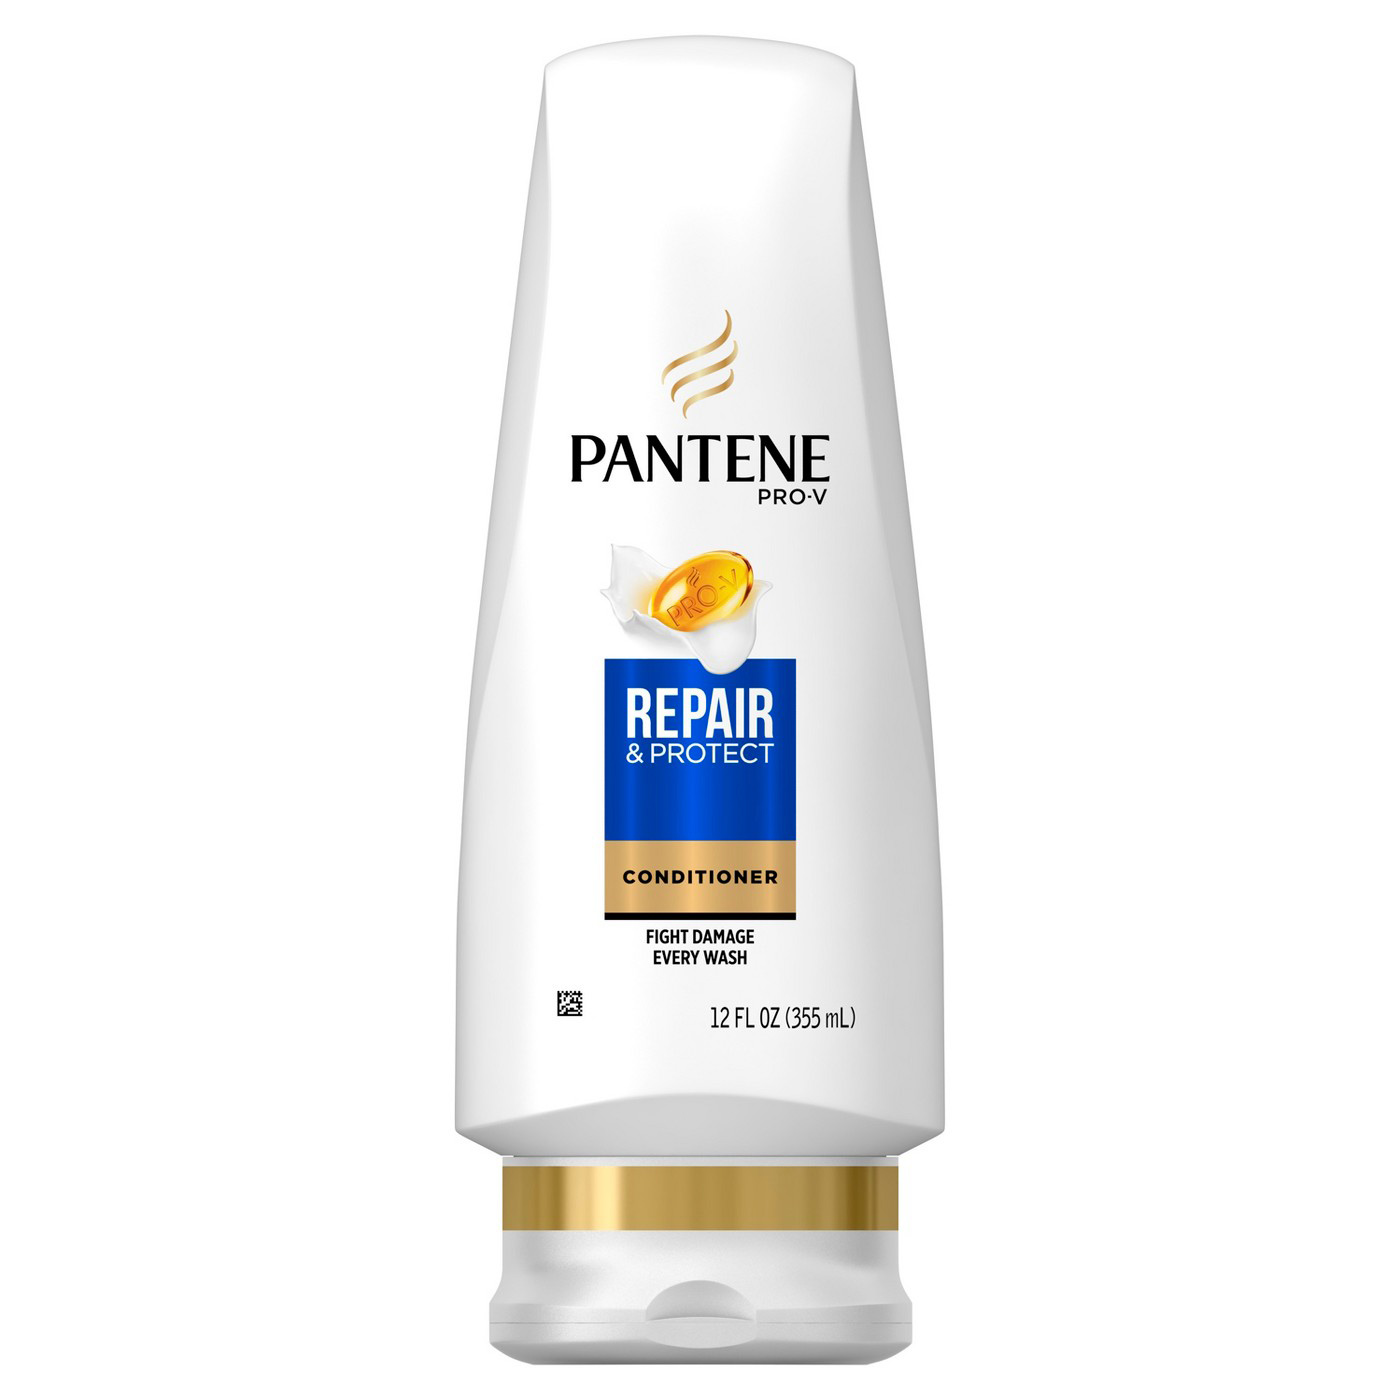 Pantene Pro-V Repair and Protect Conditioner Repair Conditioner